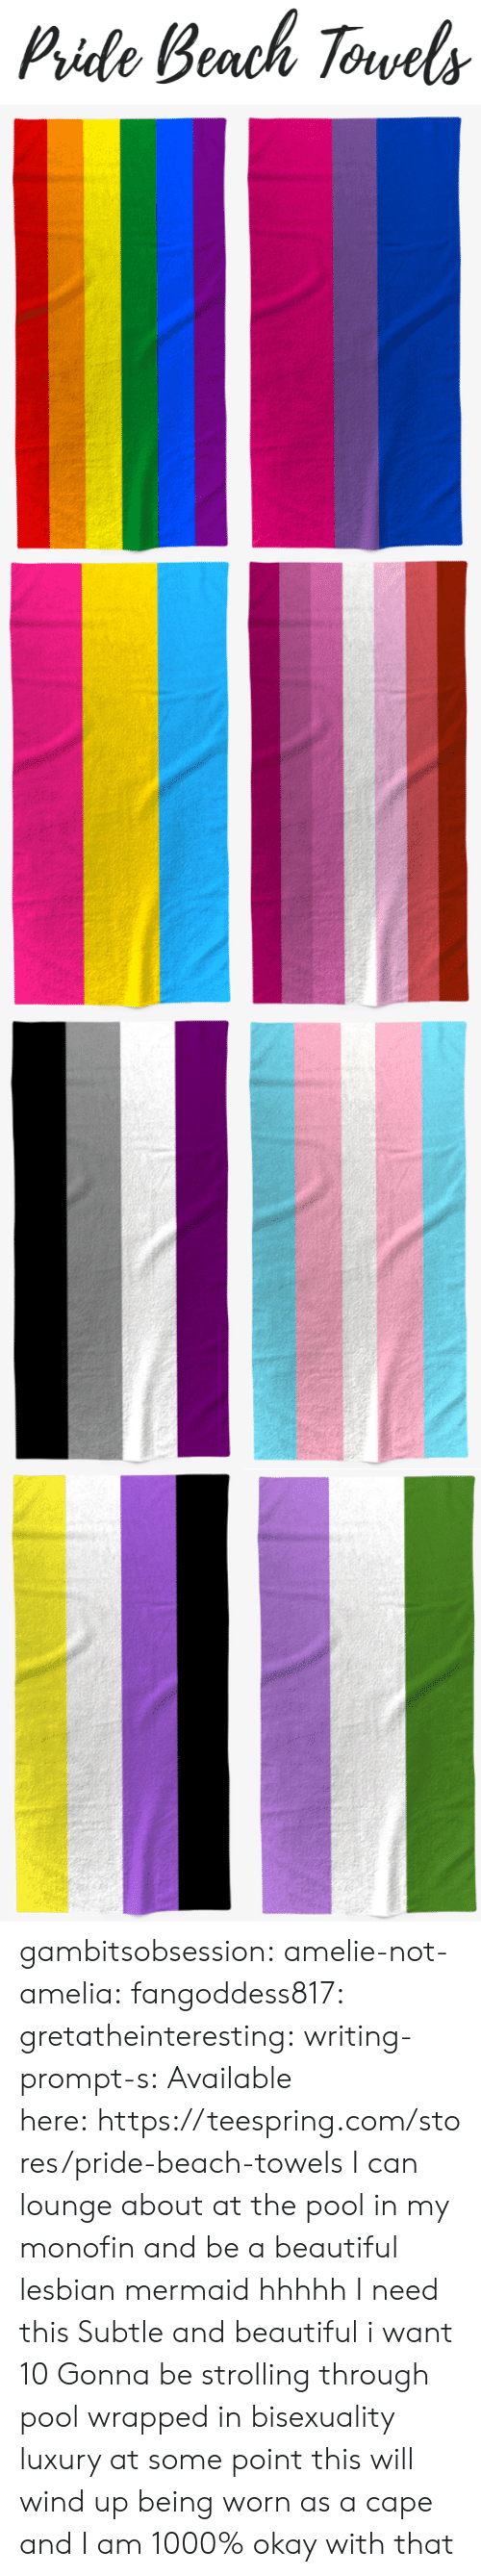 Pide: Pide Beach Torvels gambitsobsession: amelie-not-amelia:   fangoddess817:   gretatheinteresting:   writing-prompt-s: Available here:https://teespring.com/stores/pride-beach-towels  I can lounge about at the pool in my monofin and be a beautiful lesbian mermaid hhhhh I need this   Subtle and beautiful i want 10   Gonna be strolling through pool wrapped in bisexuality luxury    at some point this will wind up being worn as a cape and I am 1000% okay with that